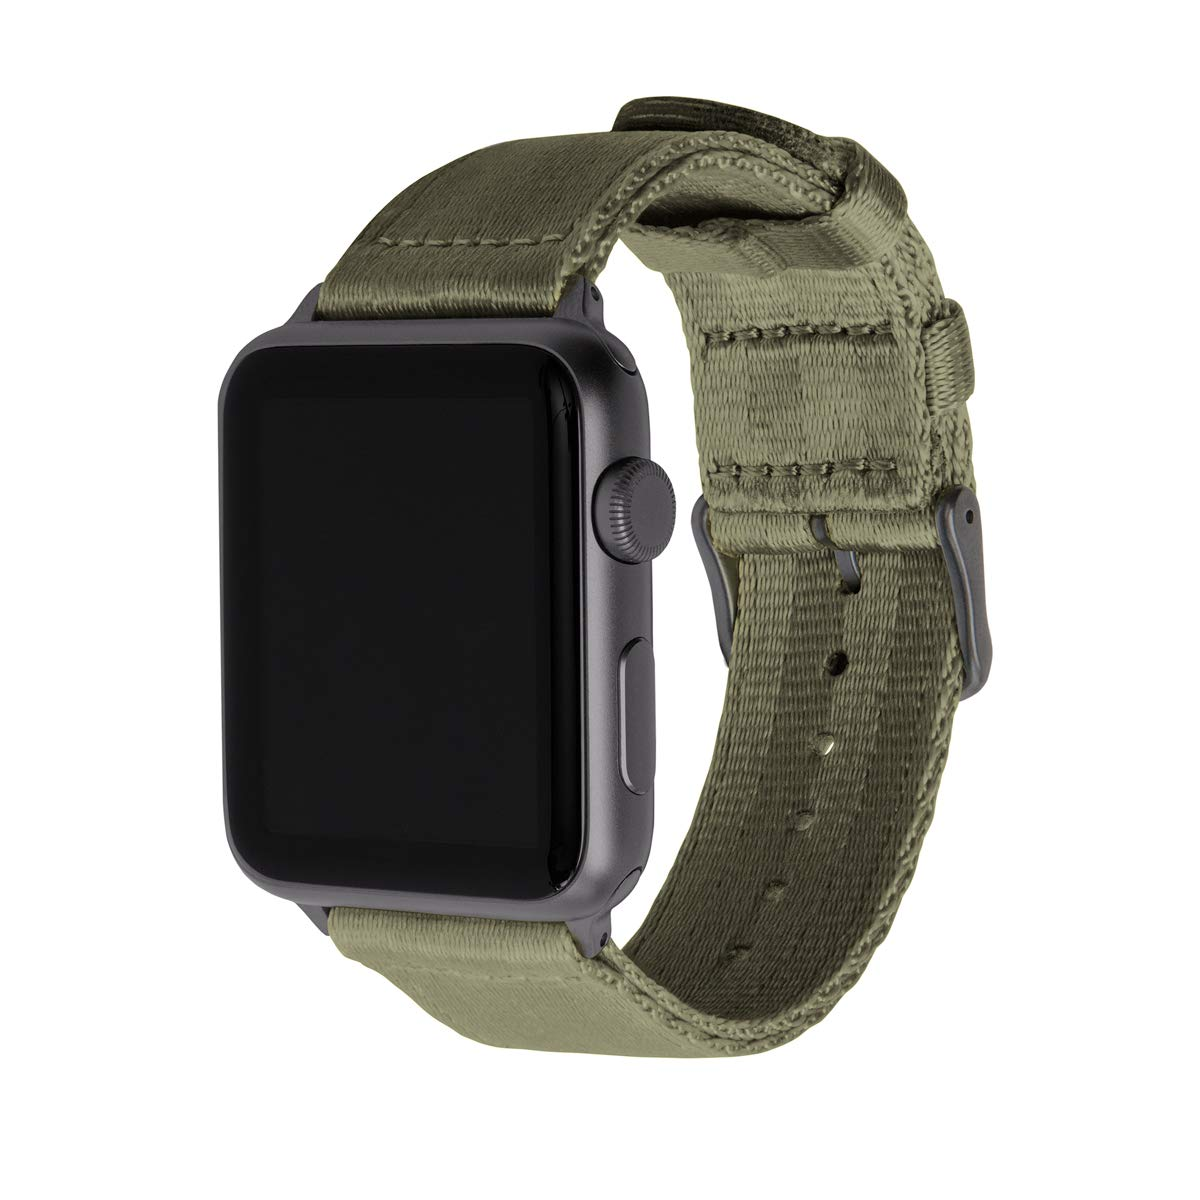 Archer Watch Straps - Seat Belt Nylon Watch Bands for Apple Watch (Olive, Space Gray, 42/44mm) by Archer Watch Straps